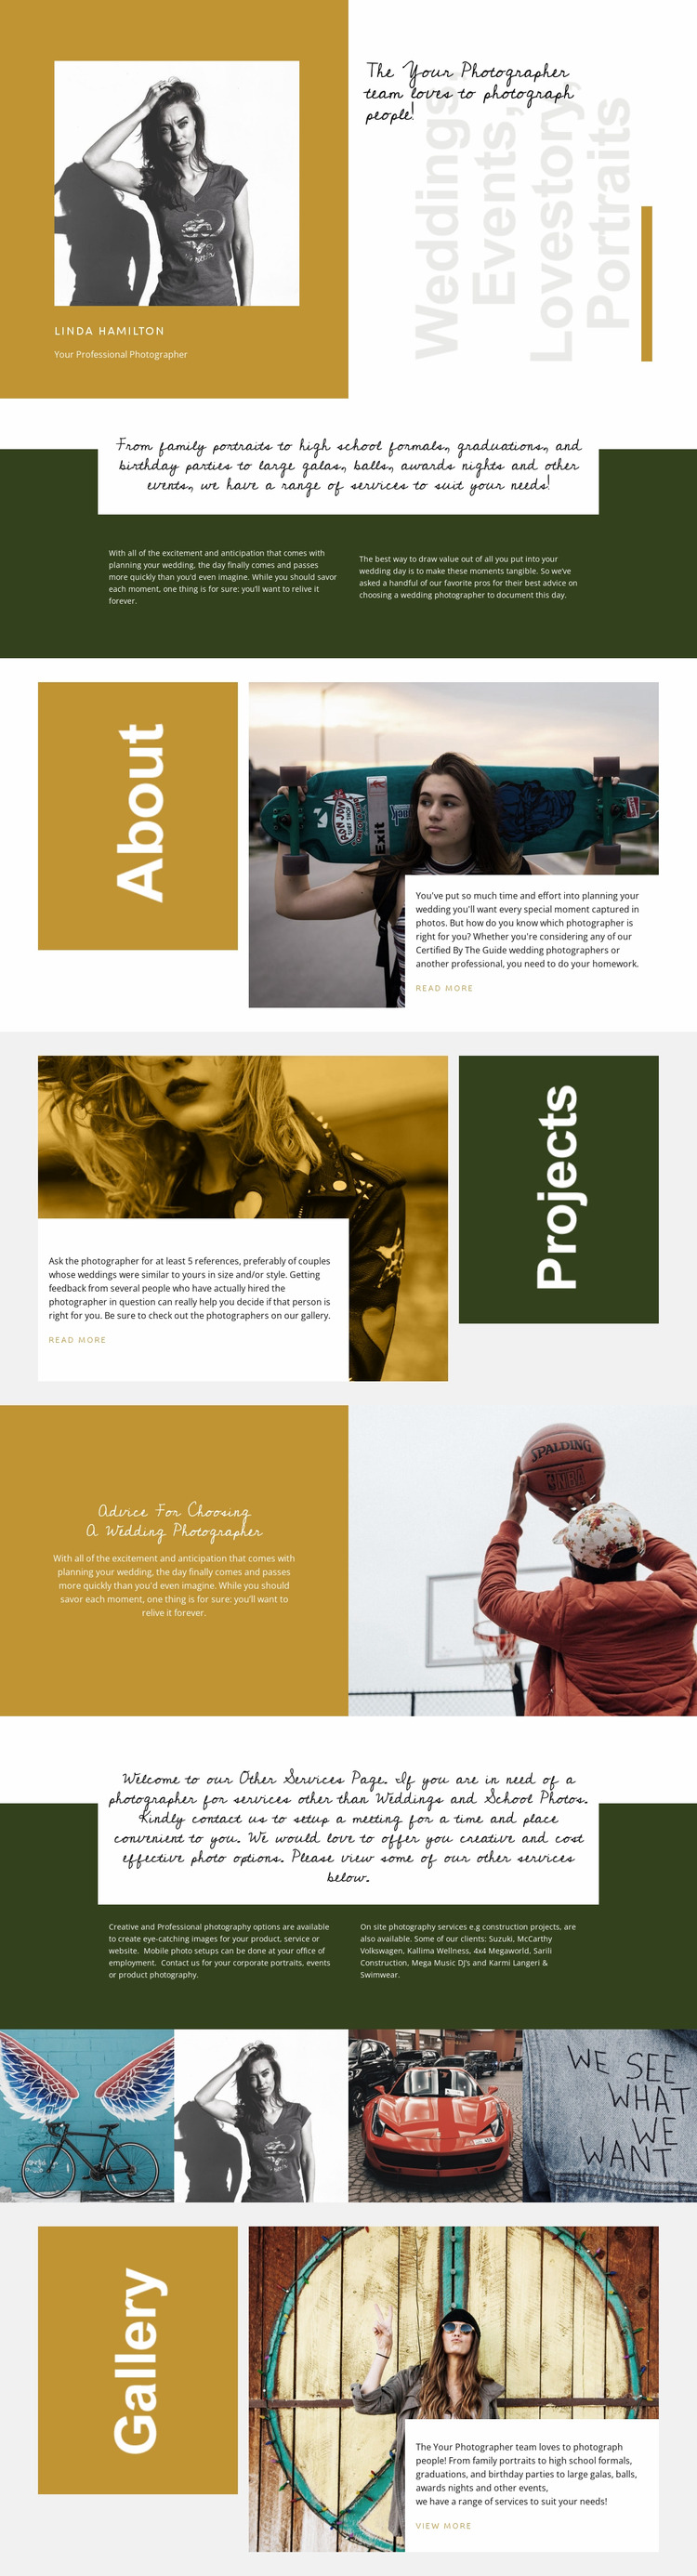 Fashion photography courses Html Website Builder